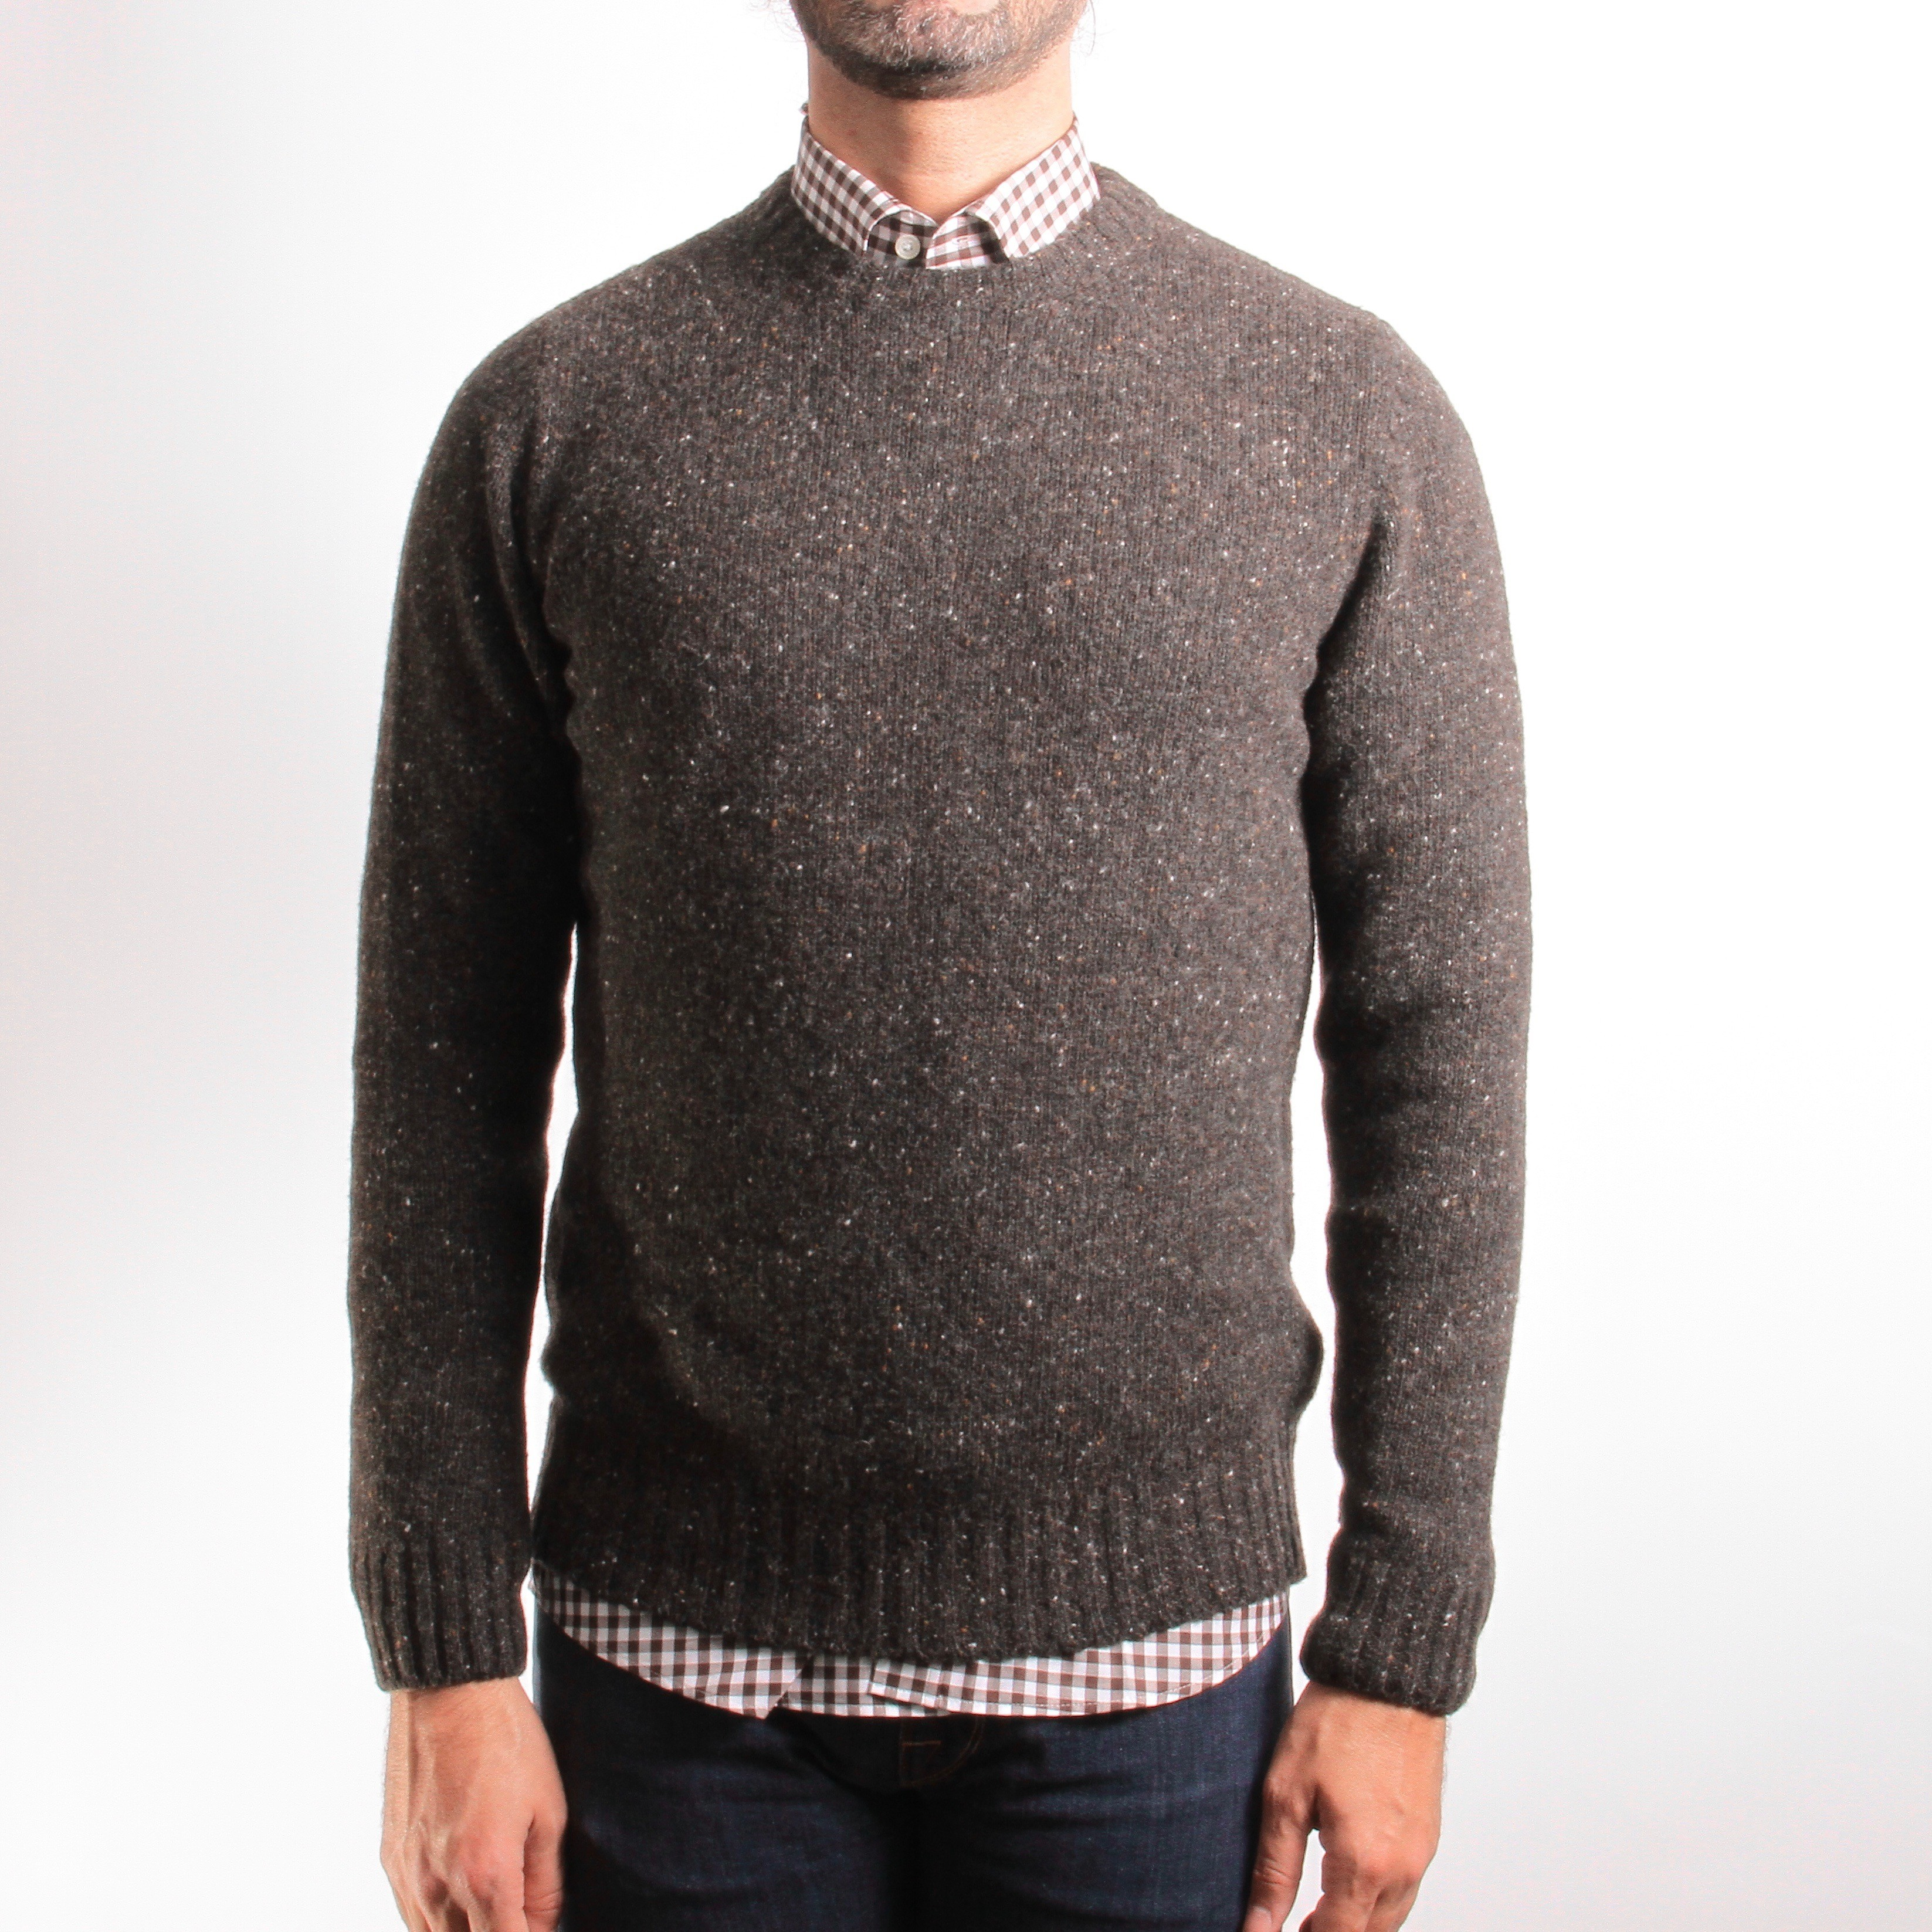 Pull chiné : marron - Col rond (pulls)